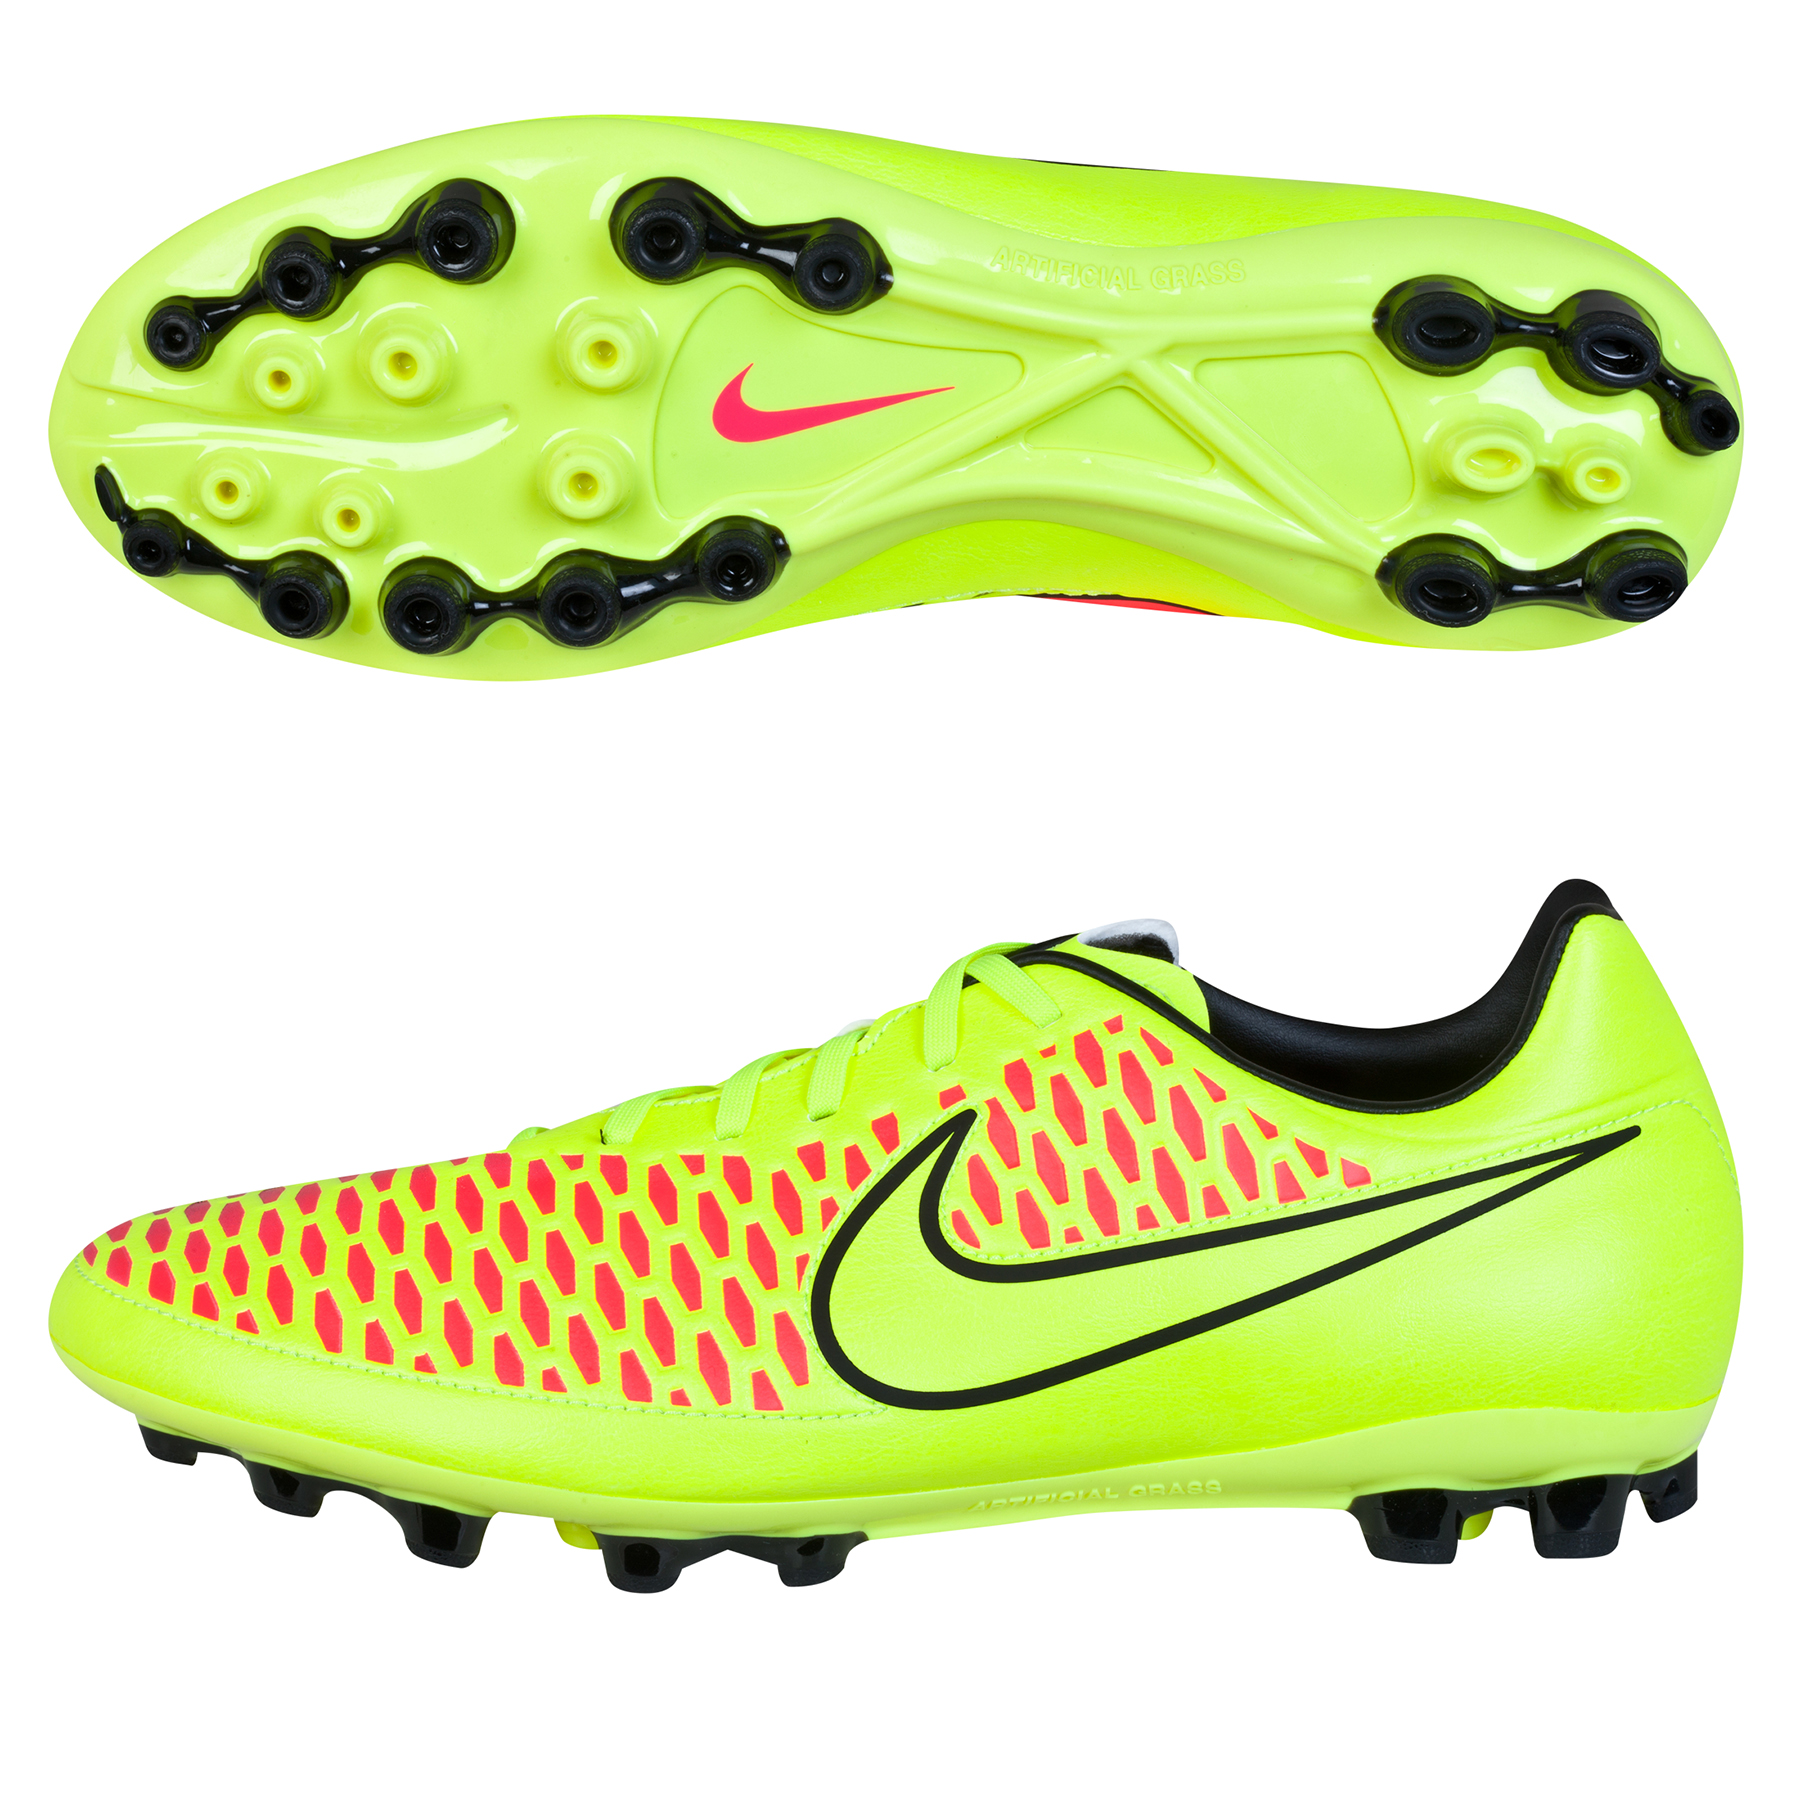 Nike Magista Onda Artificial Grass Football Boots Yellow